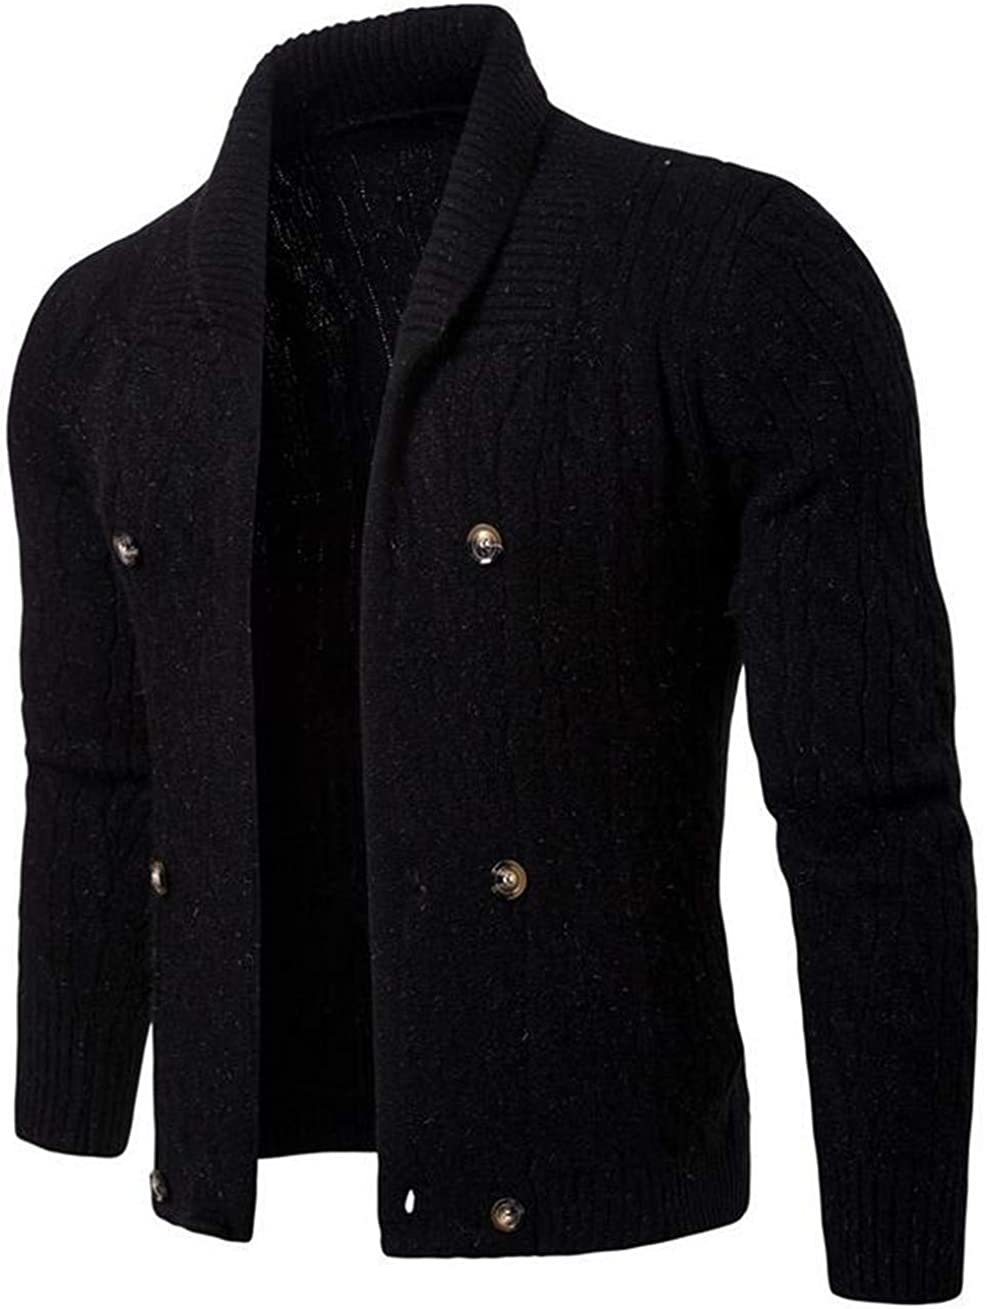 KLJR Men Slim Fit Open Front Long Cardigan Sweater Hooded Knit Cardigan